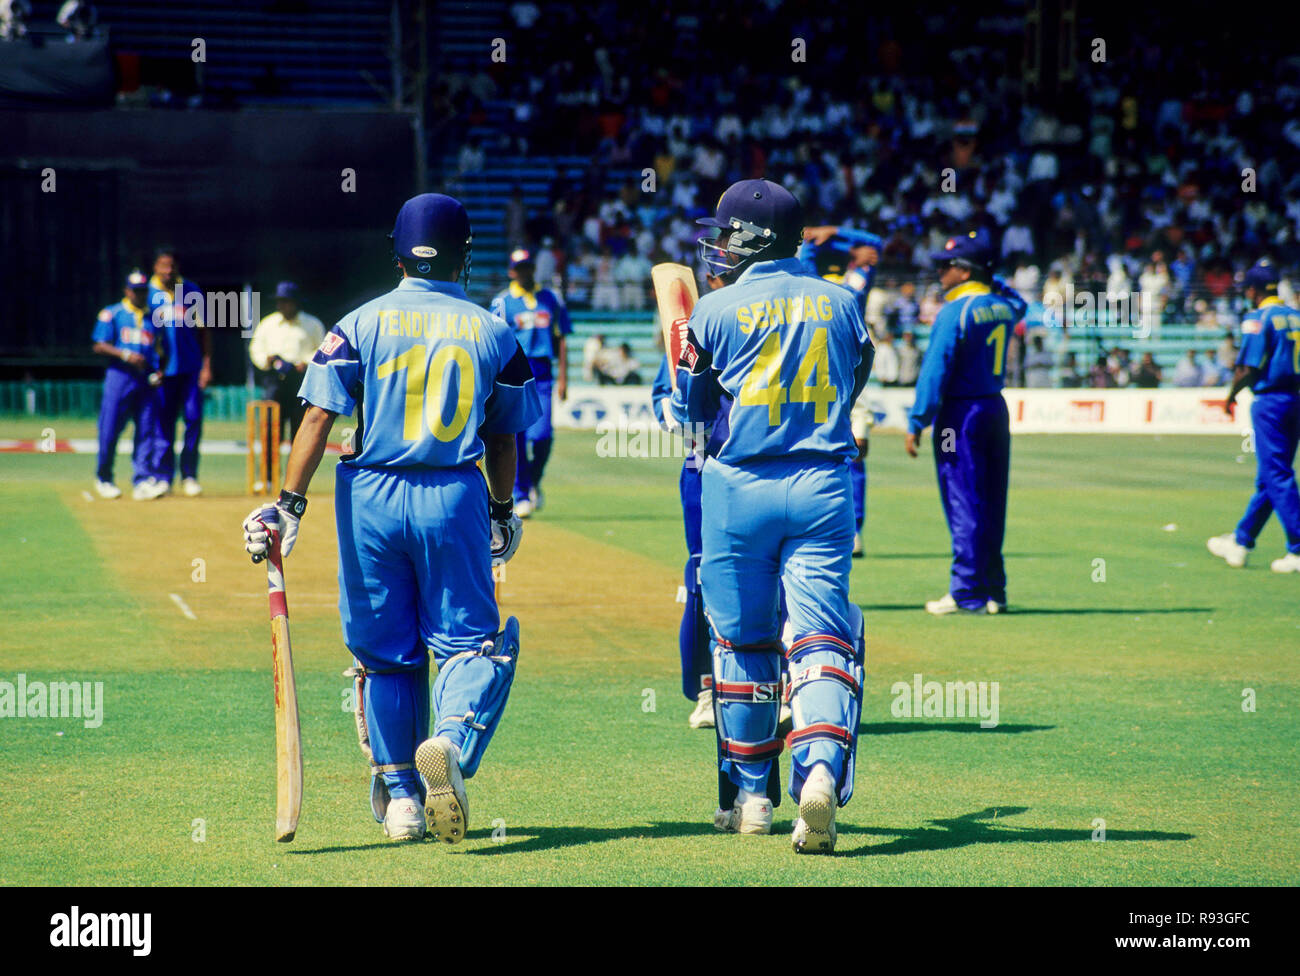 indian cricket players tendulkar and sehwag walking towards pitch, india, NO MR - Stock Image